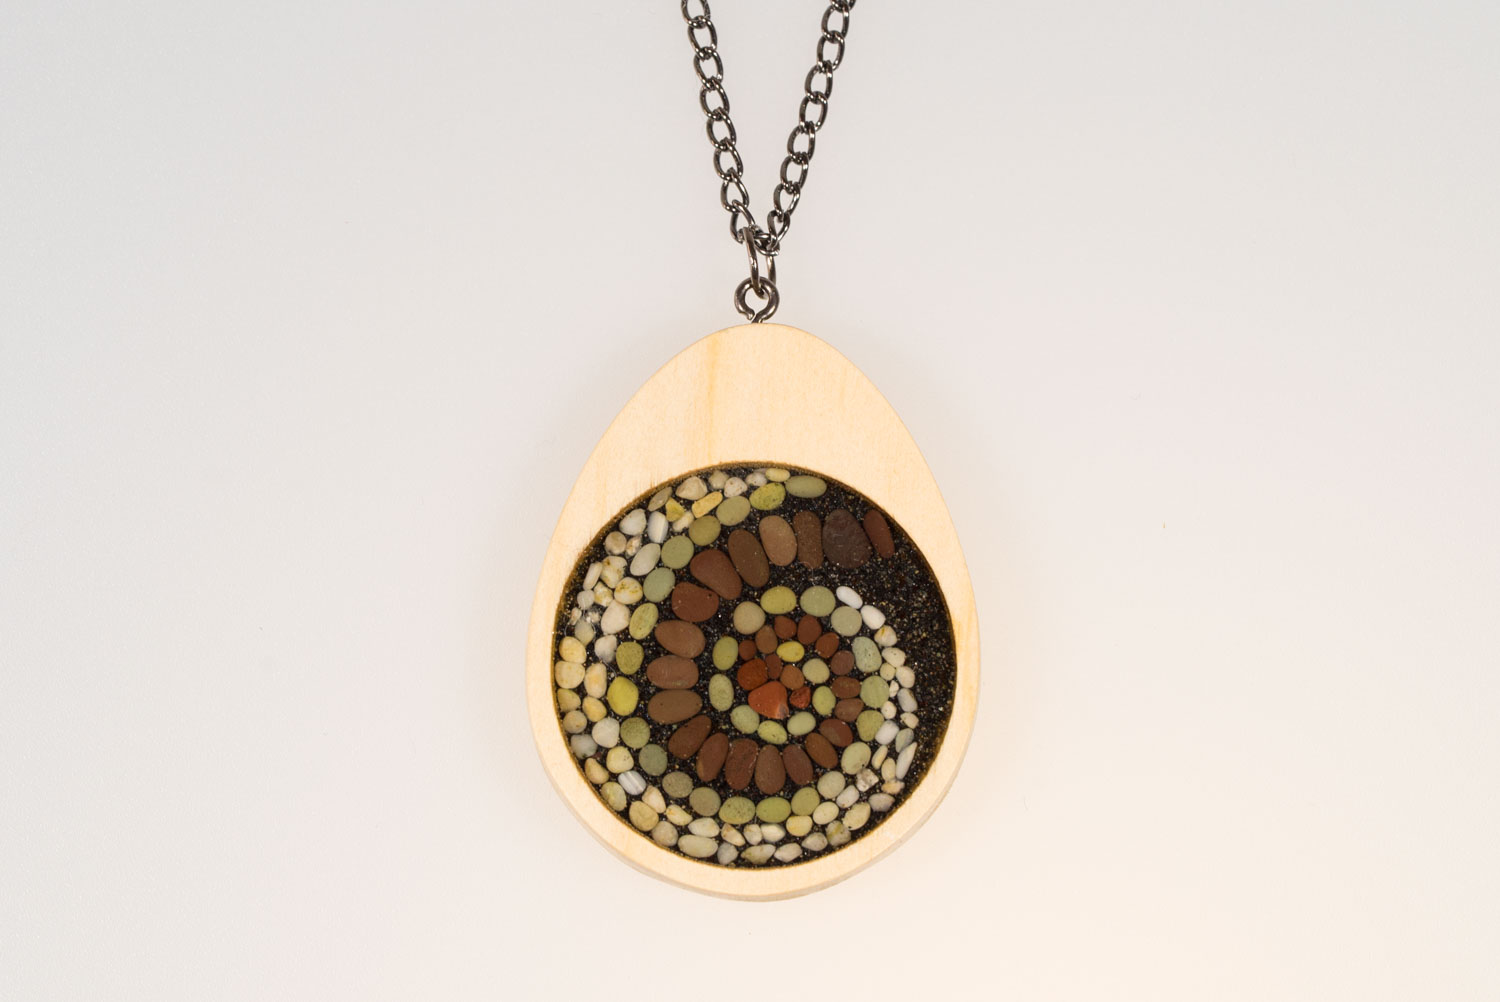 Beach pebble and wood mini mosaic original art pendant felt